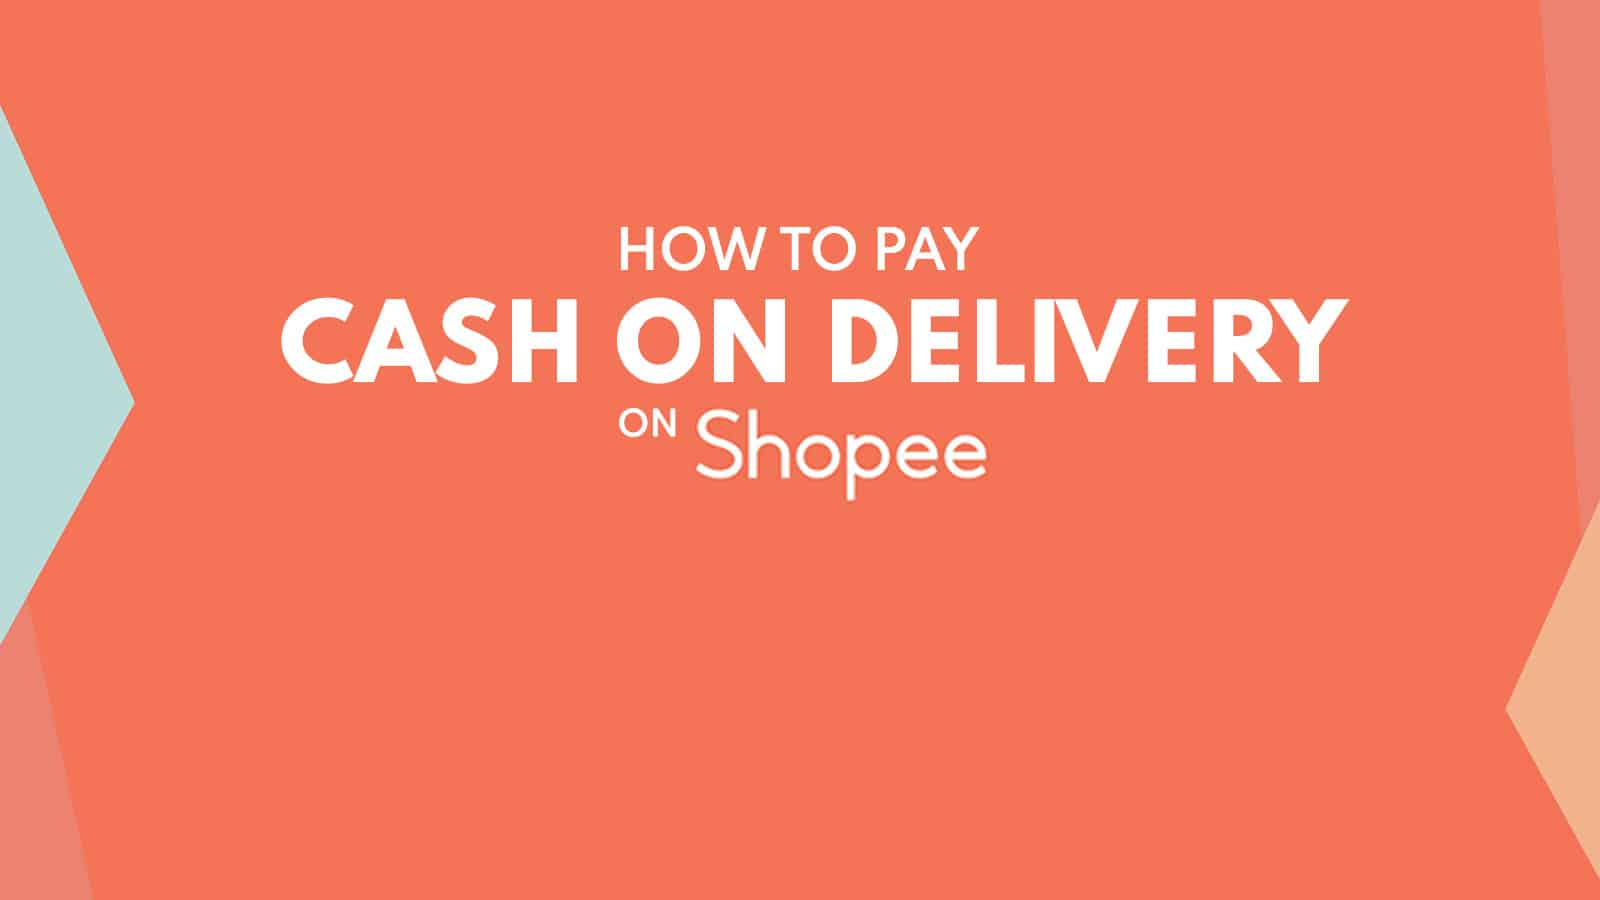 SHOPEE: How to Pay CASH ON DELIVERY (COD)